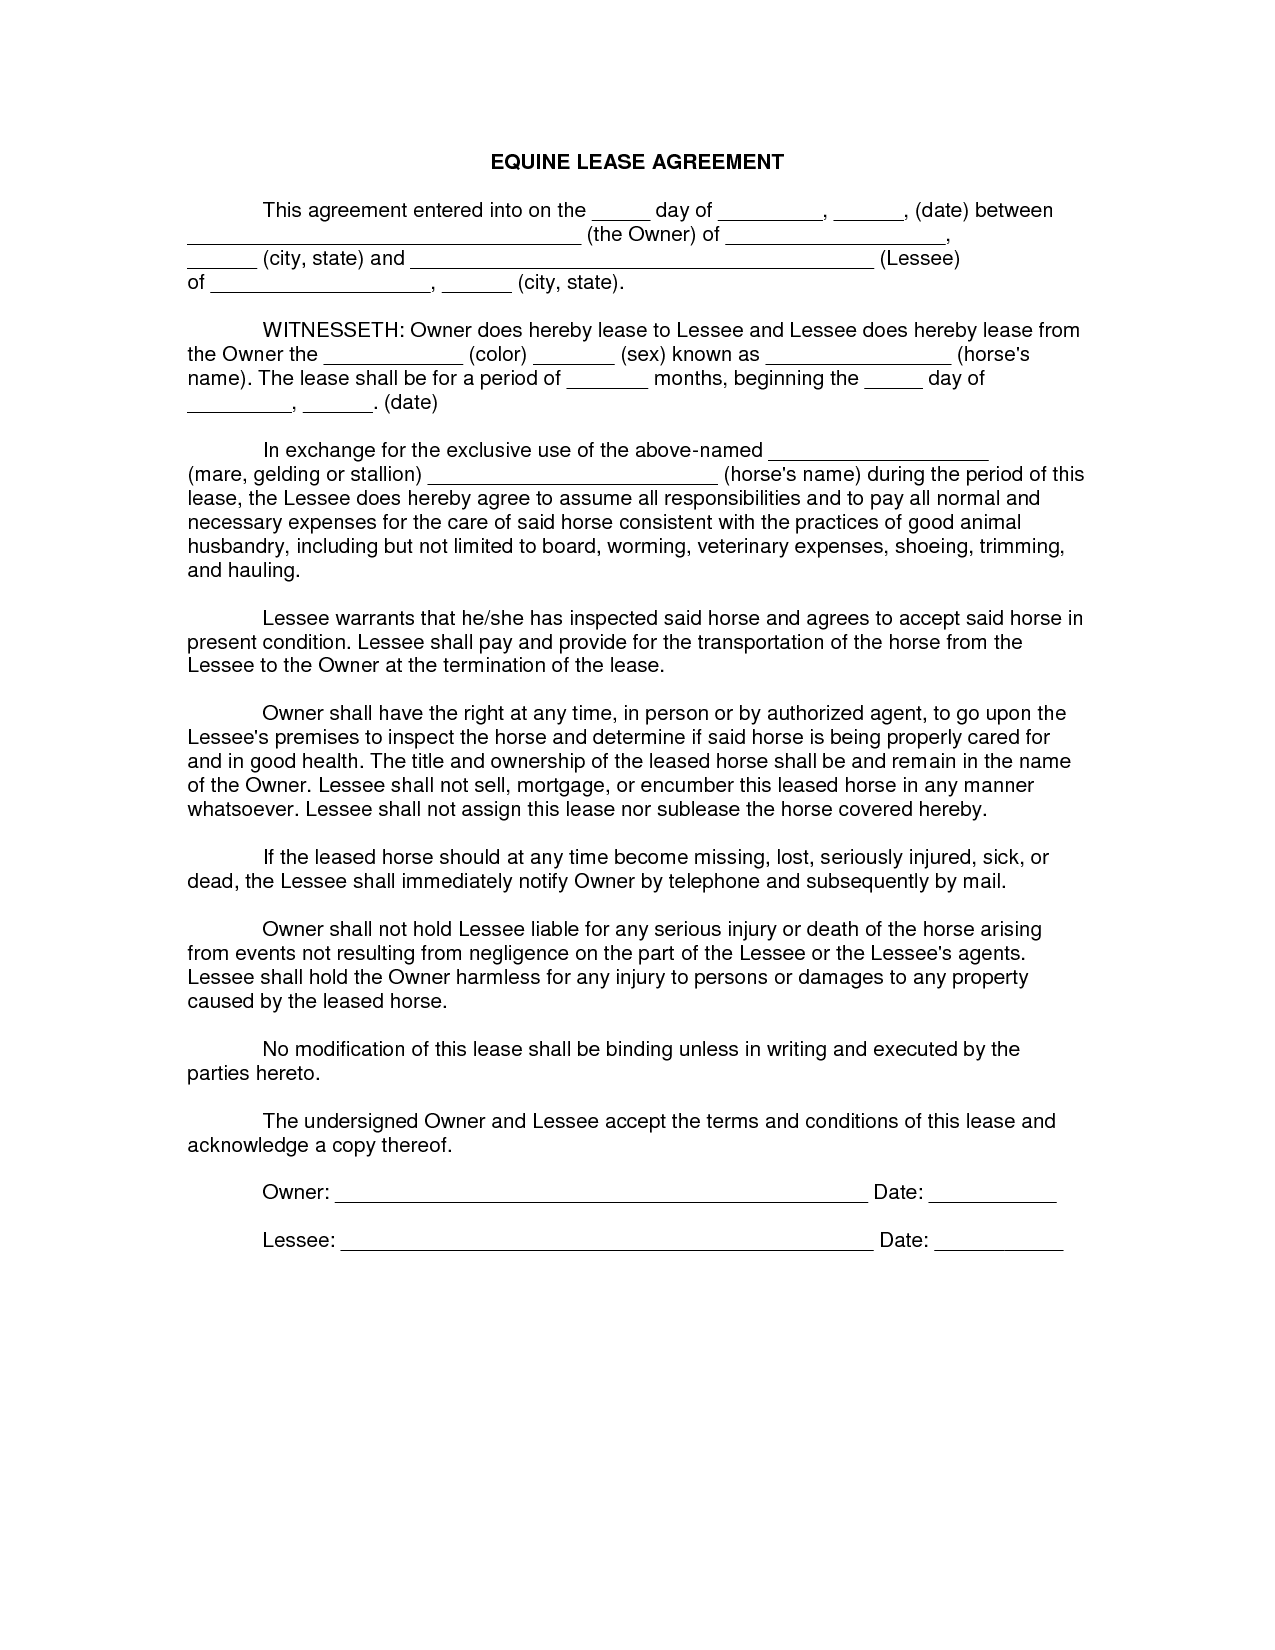 Lease Agreement Contract By Bgf  Sublease Agreement Contract